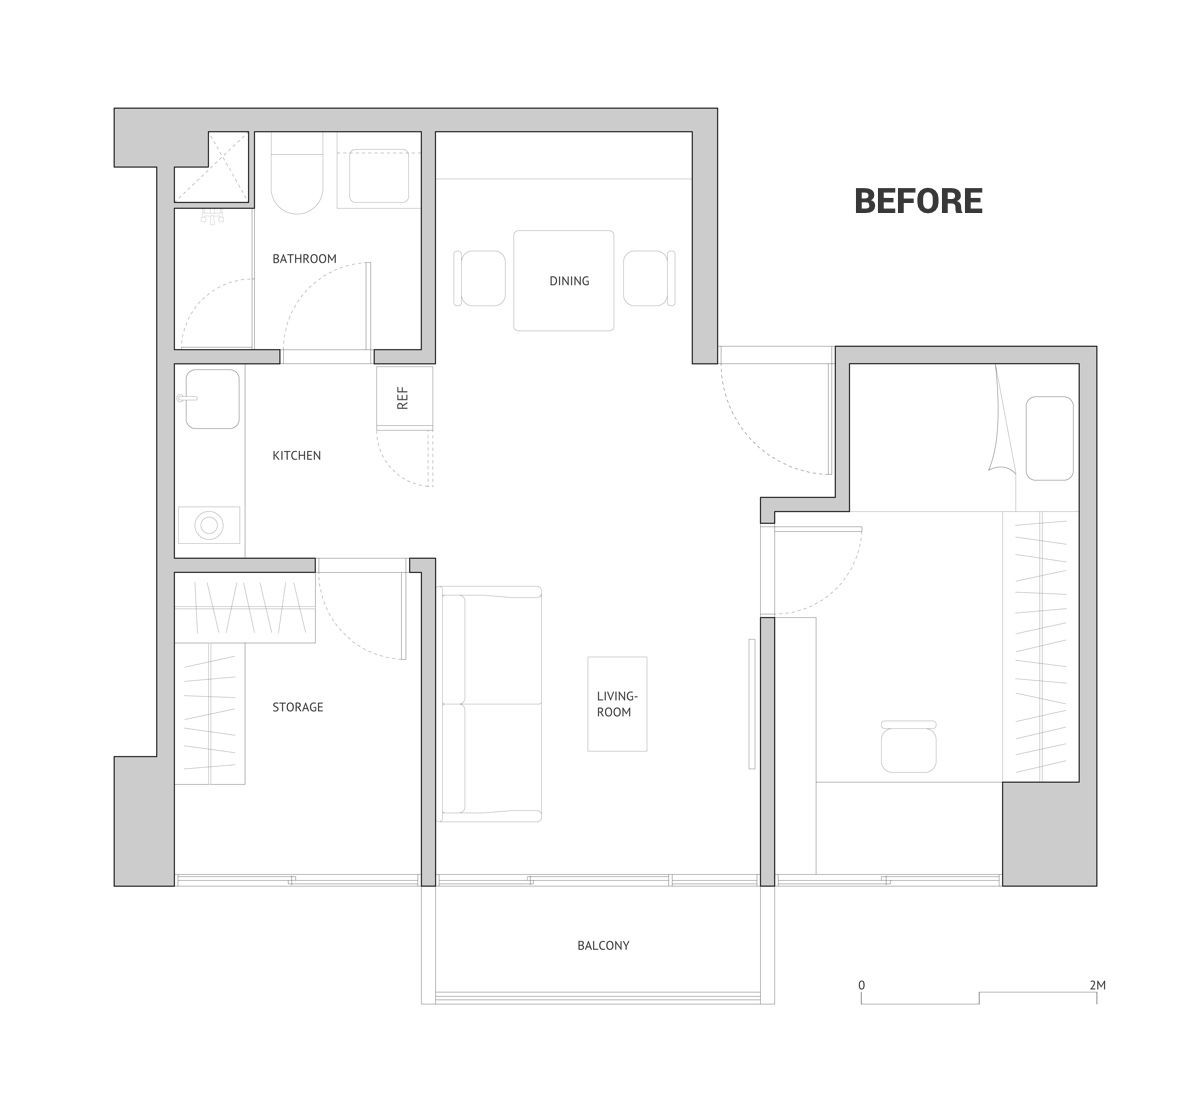 Open Loft Design Floorplan Before - Cat owner s cramped apartment gets room to breathe